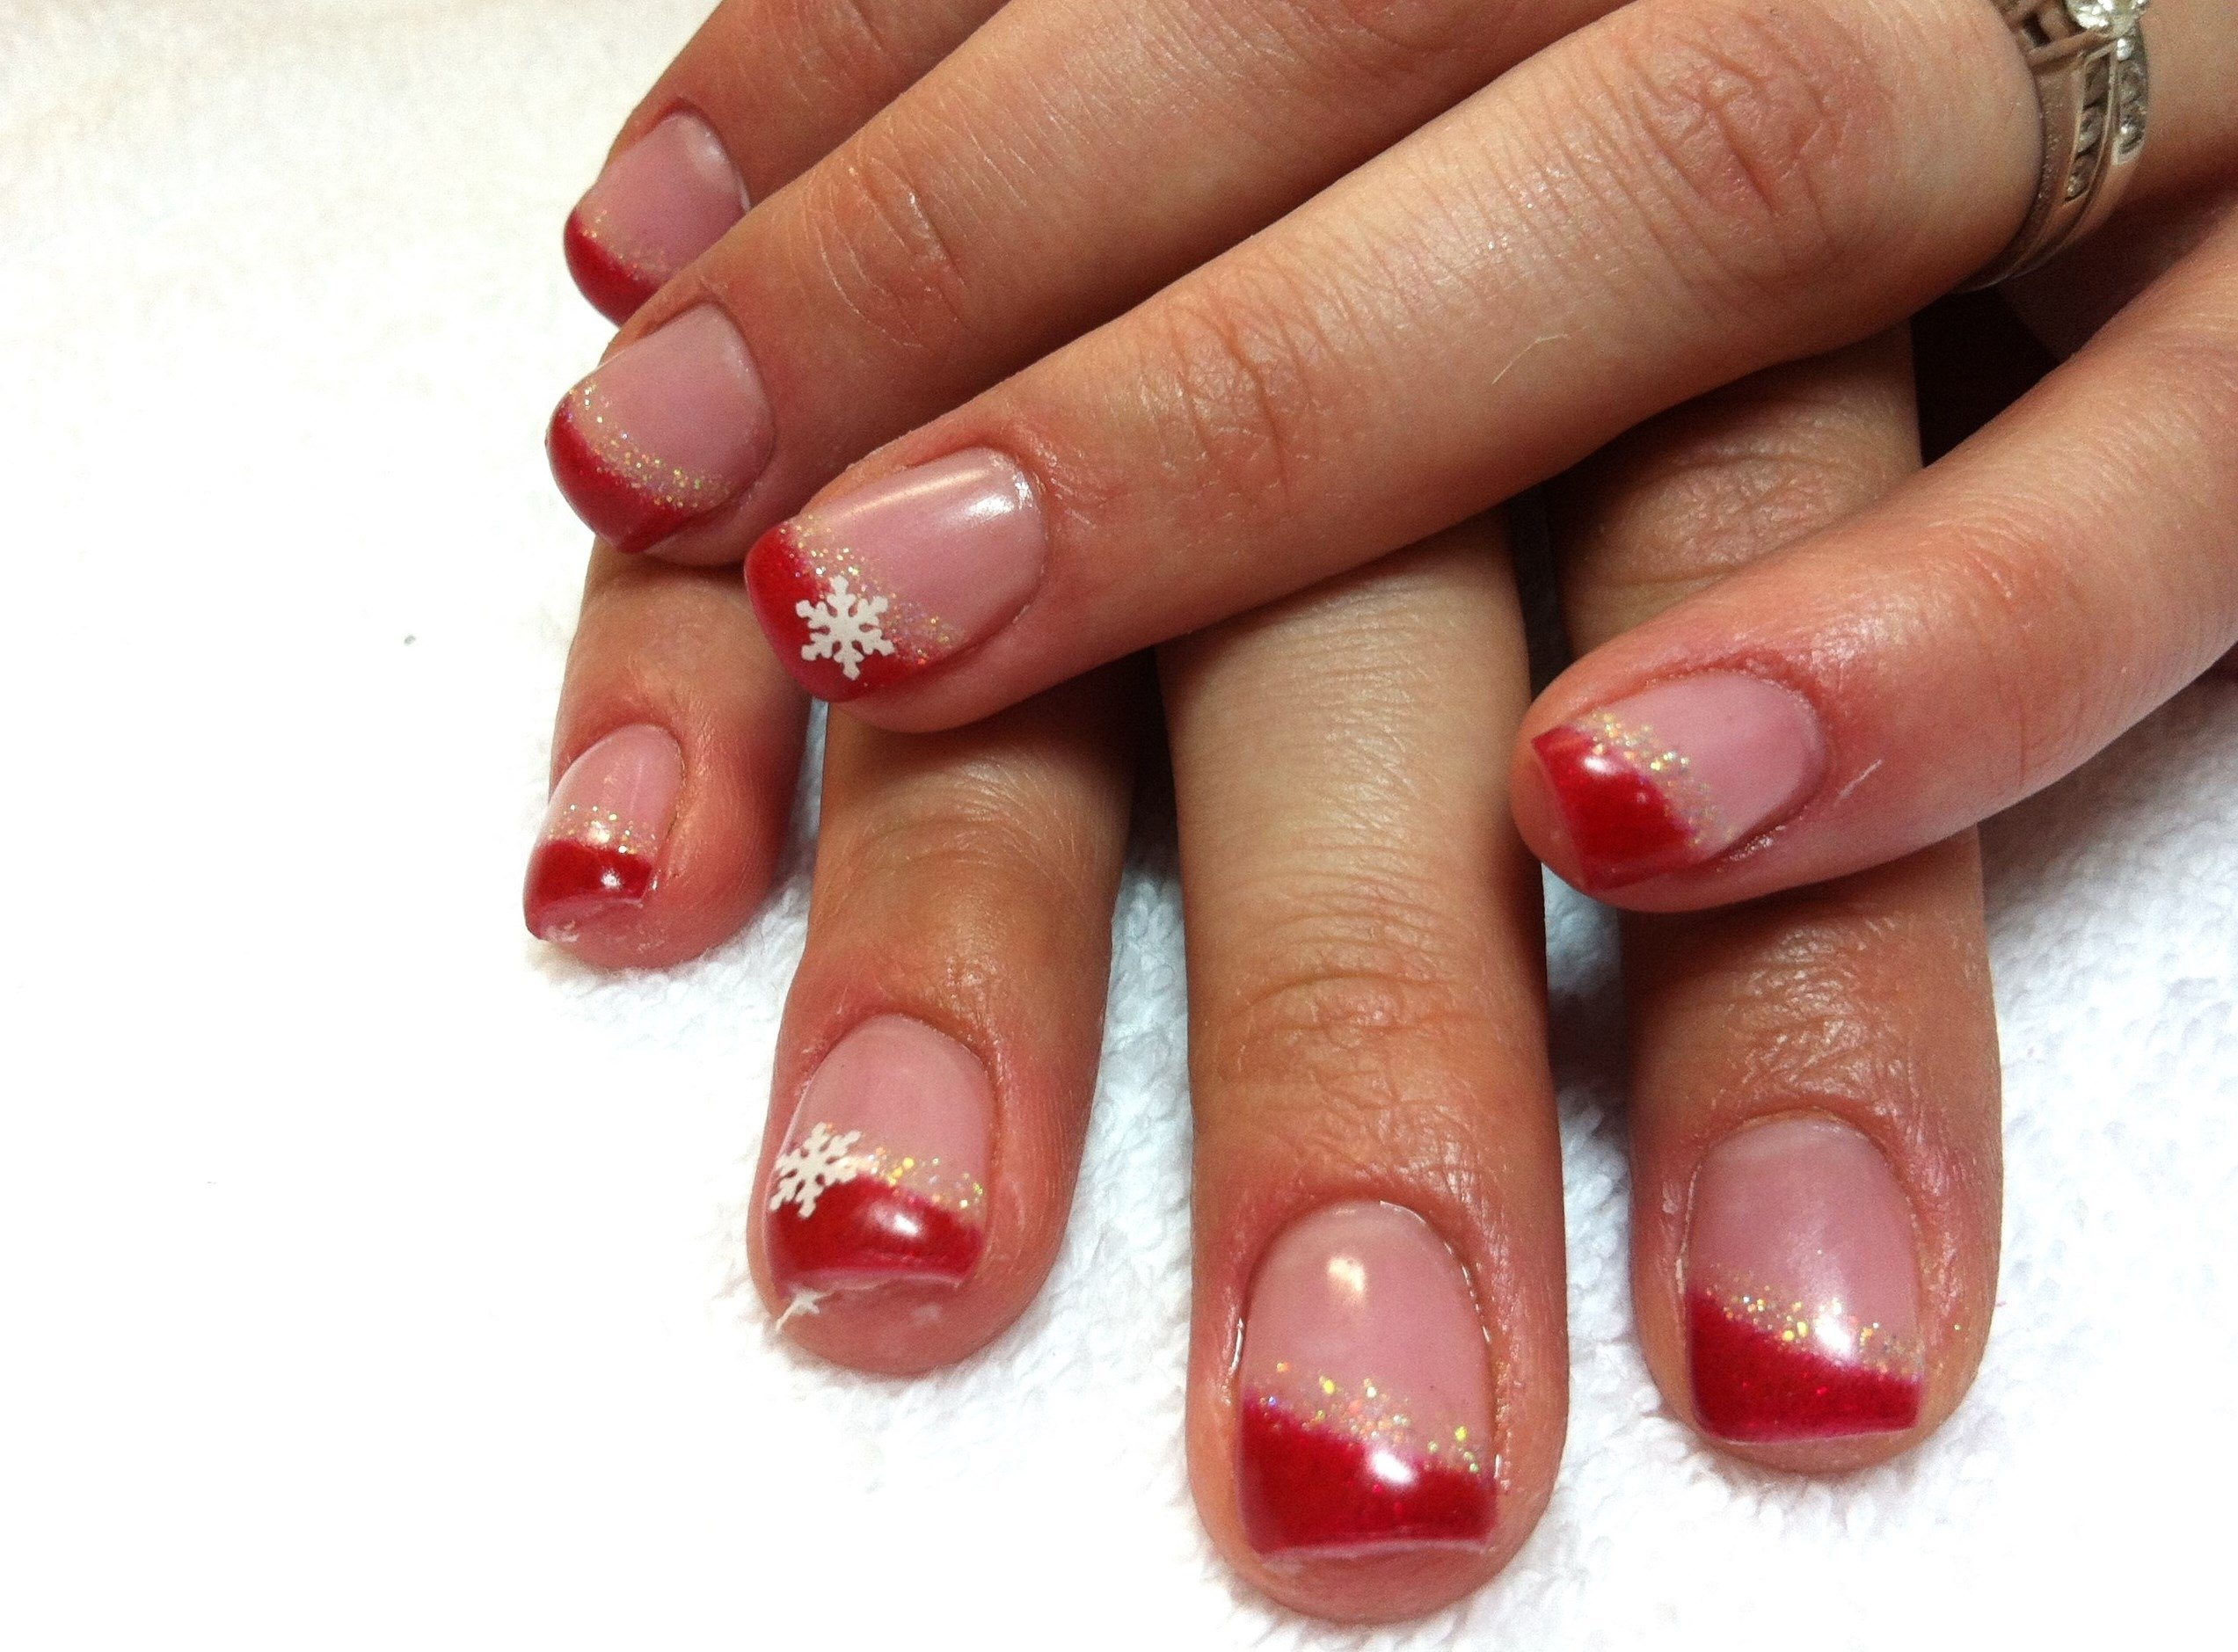 10 Awesome French Tip Nail Design Ideas picture 4 of 5 nail designs 2016 french photo gallery 2018 2020